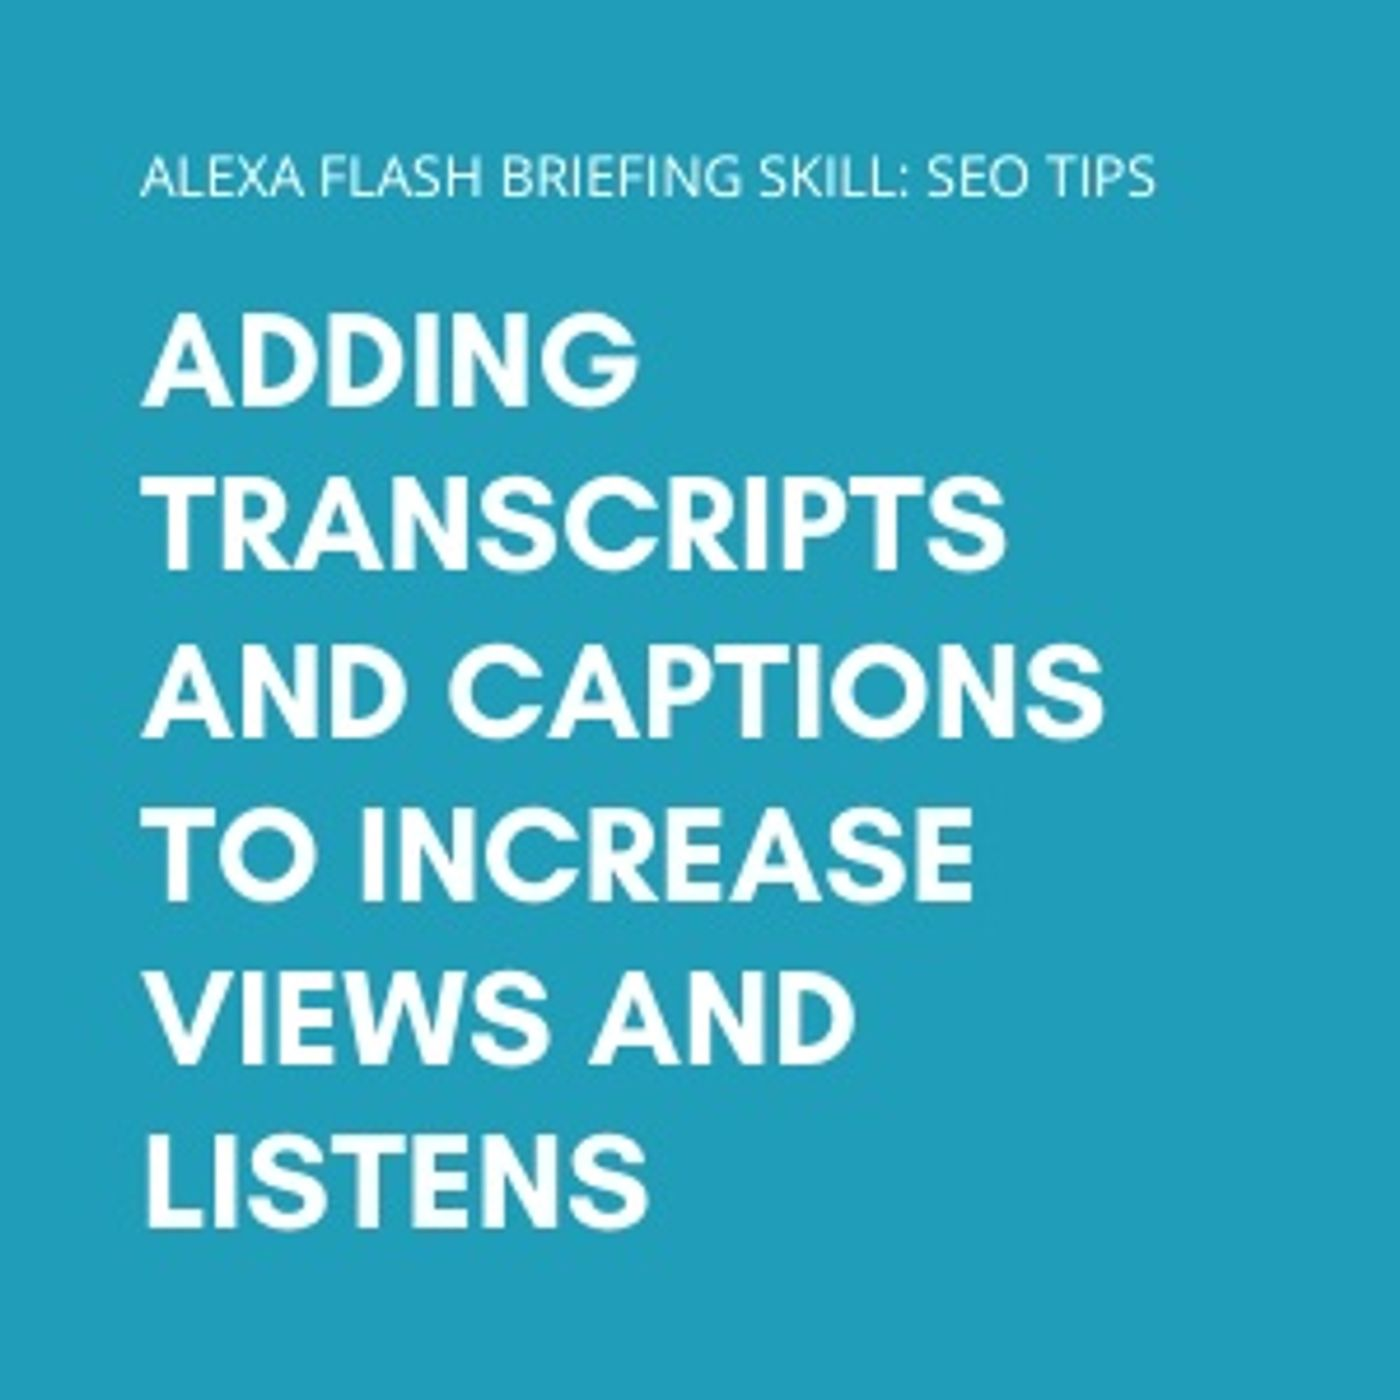 Adding transcripts and captions to increase views and listens